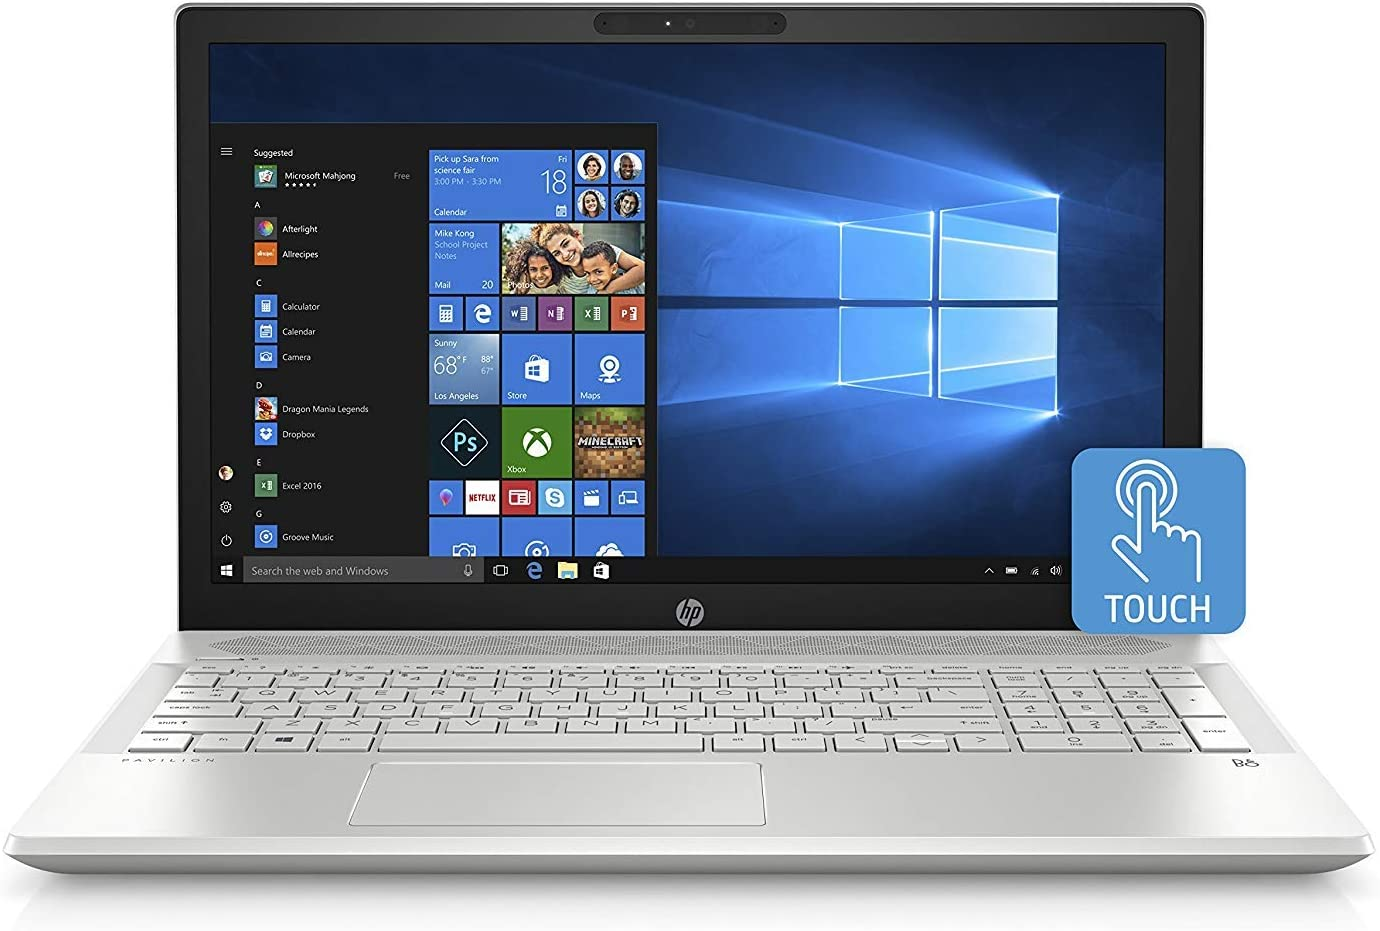 "HP Pavilion Touchscreen 15.6"" Full HD IPS Notebook, Intel Core i7-8550U Processor, 24GB Memory: 16GB Intel Optane + 8GB RAM, 1TB Hard Drive, HD Wide FOV Webcam, B&O Play Audio, 2 Year Warranty Care Pa"